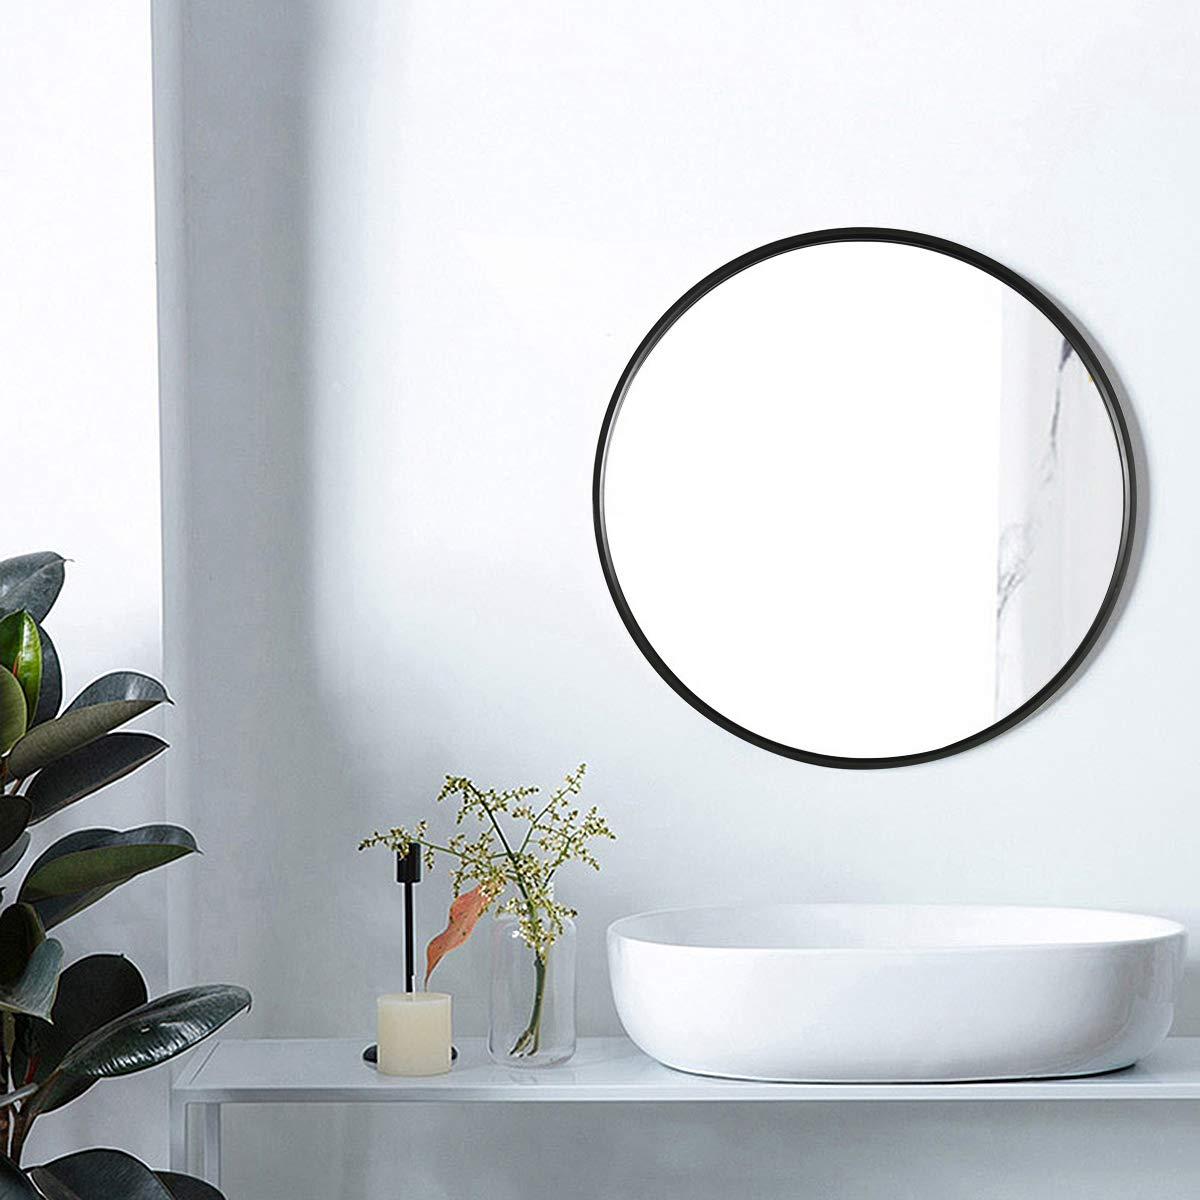 TinyTimes 27.56 Wooden Frame Wall Mirror, Round Vanity Mirror, Large, Clean, Decor, for Entryways, Living Rooms, Bathroom and More, Round Wall Mirror Black